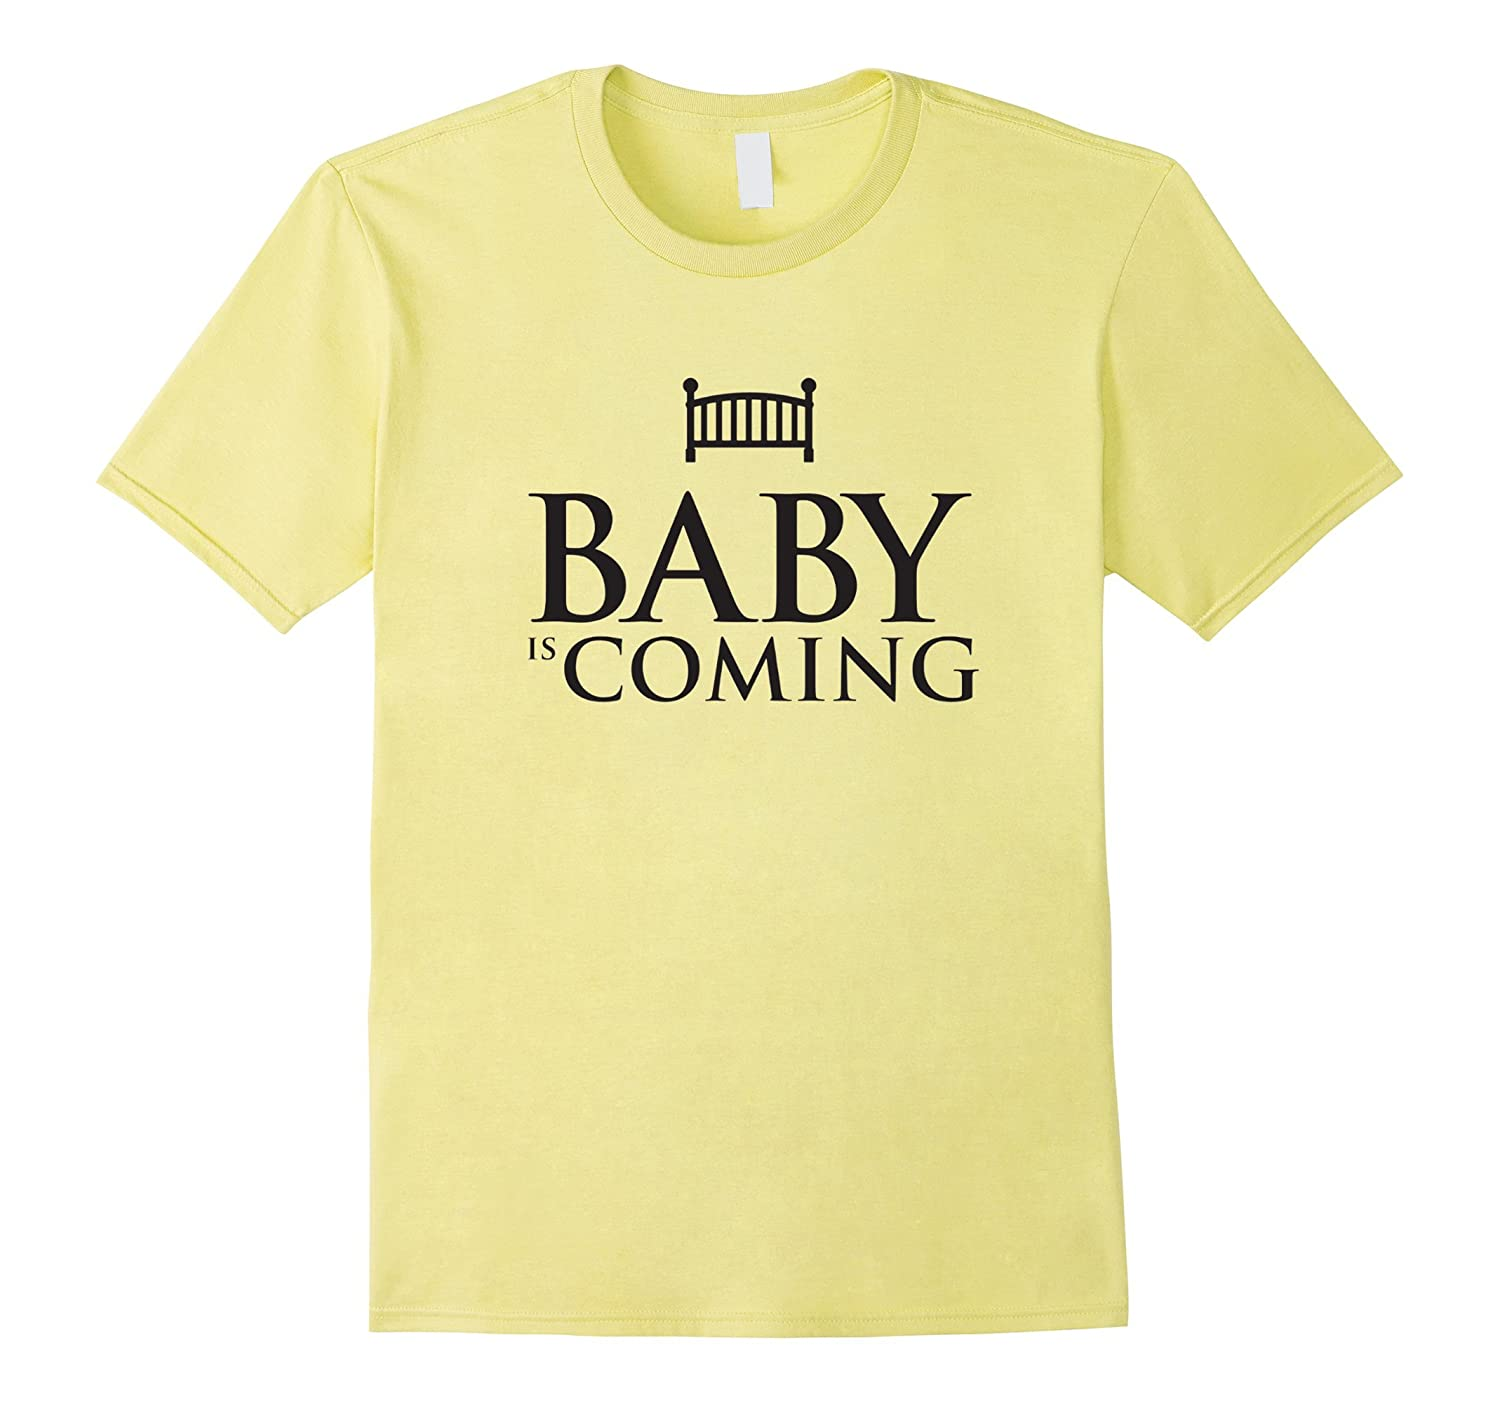 Baby is Coming by Baby Gender Reveal Shirt